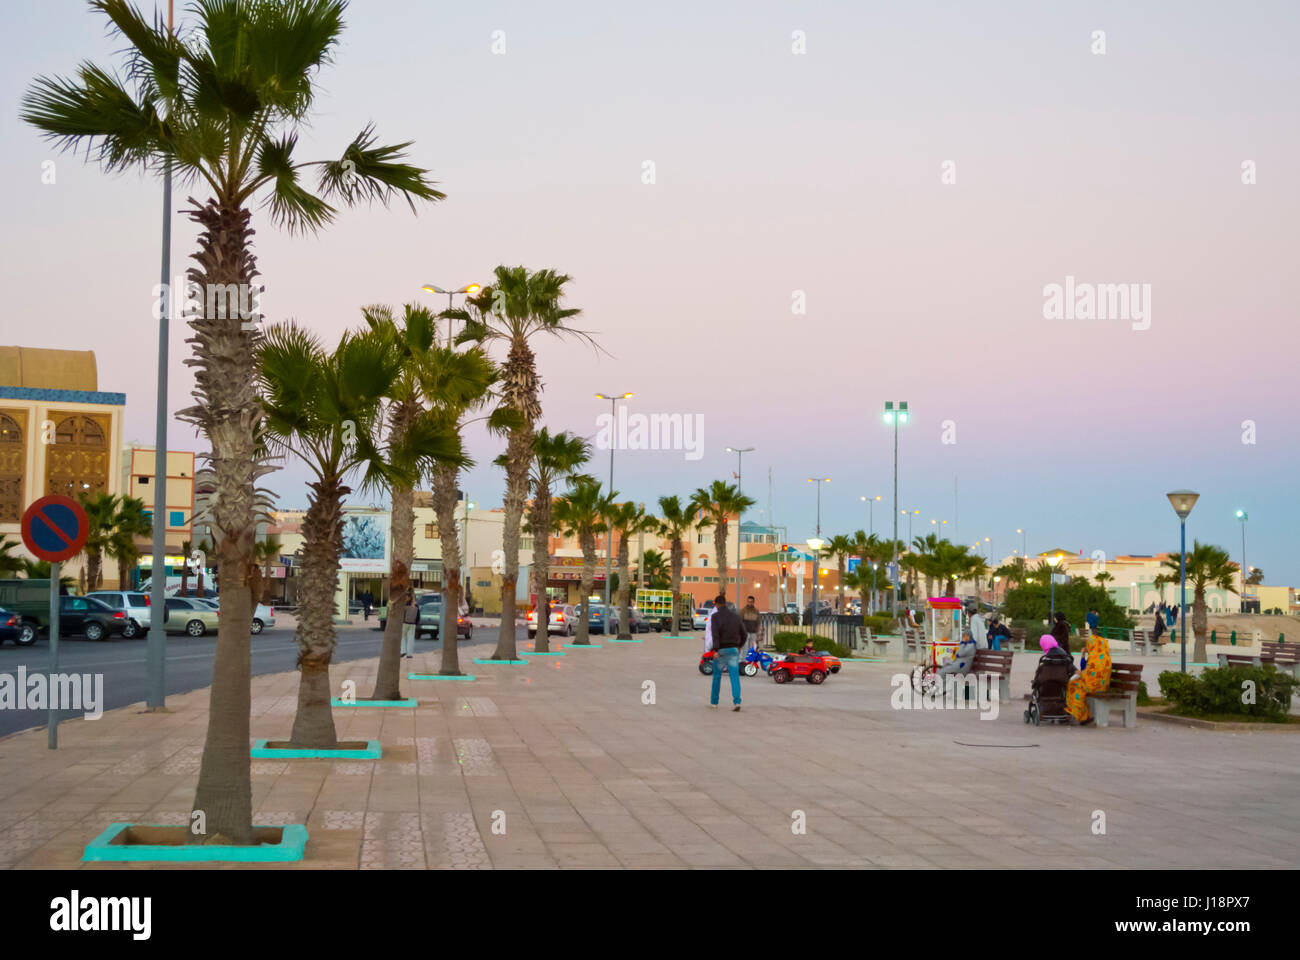 Seaside promenade, Dakhla, Western Sahara, administered by Morocco, Africa - Stock Image